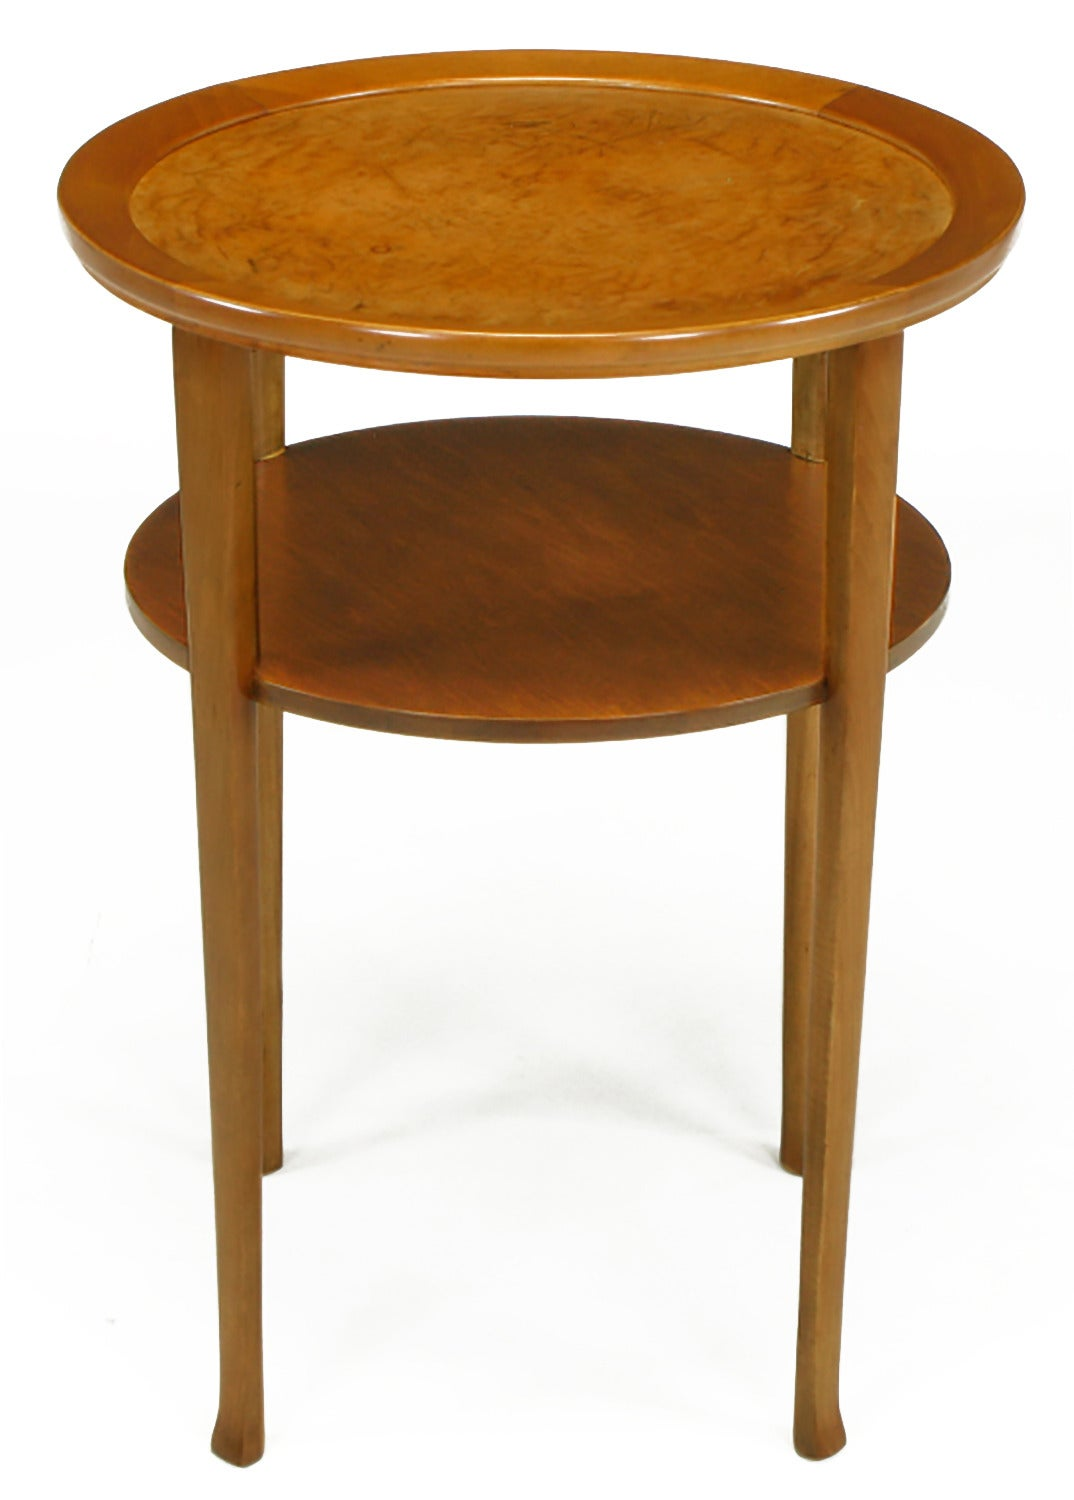 Restored side table constructed of solid maple and maple veneer with inlaid buffalo hide top. Similar in design to an early Parzinger designs. Two tiers with solid maple legs and carved, slightly turned feet.